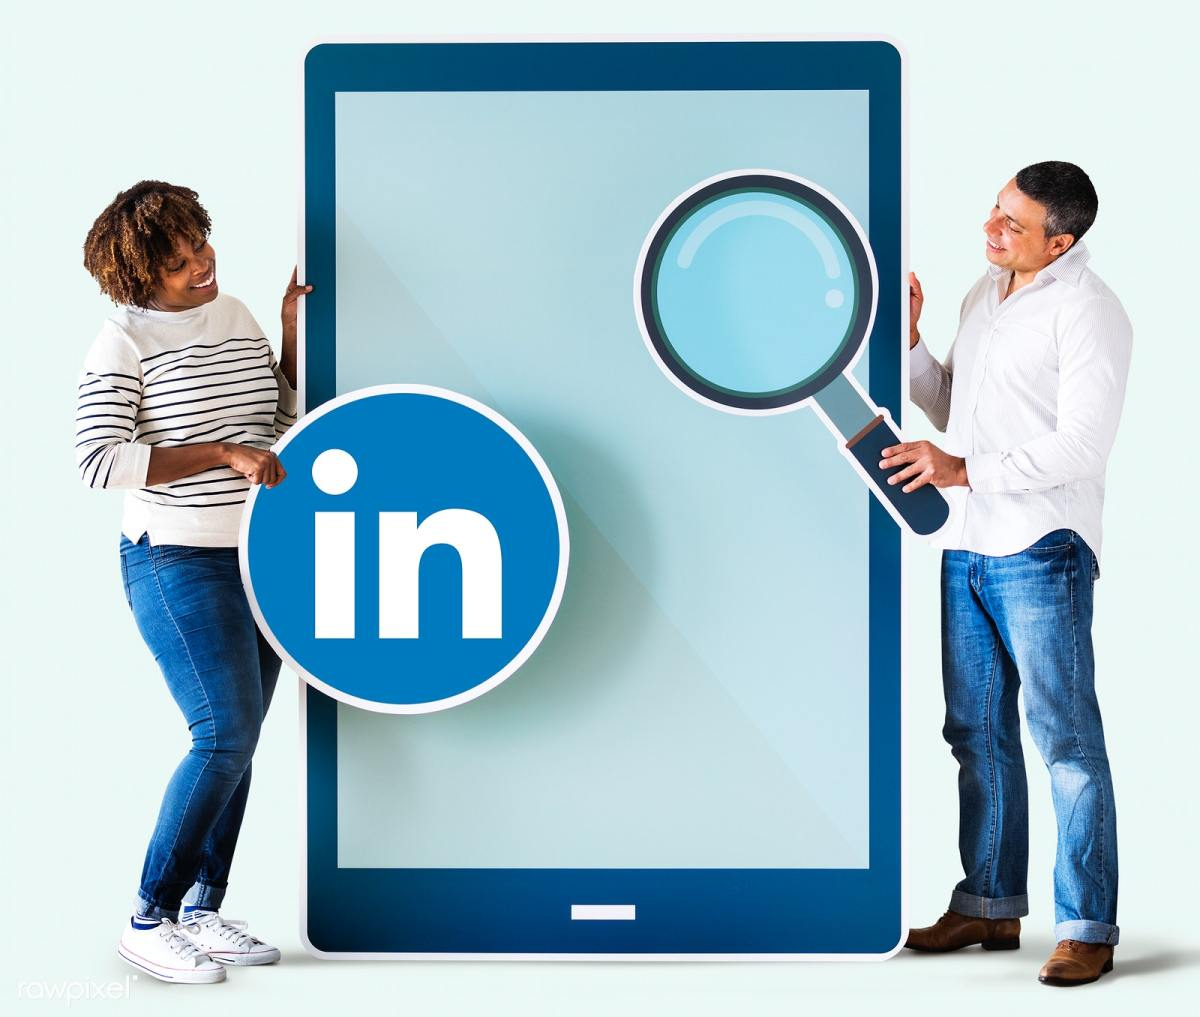 Making the Most Out of the Professional Network - Kdan's Tips & Tricks for LinkedIn